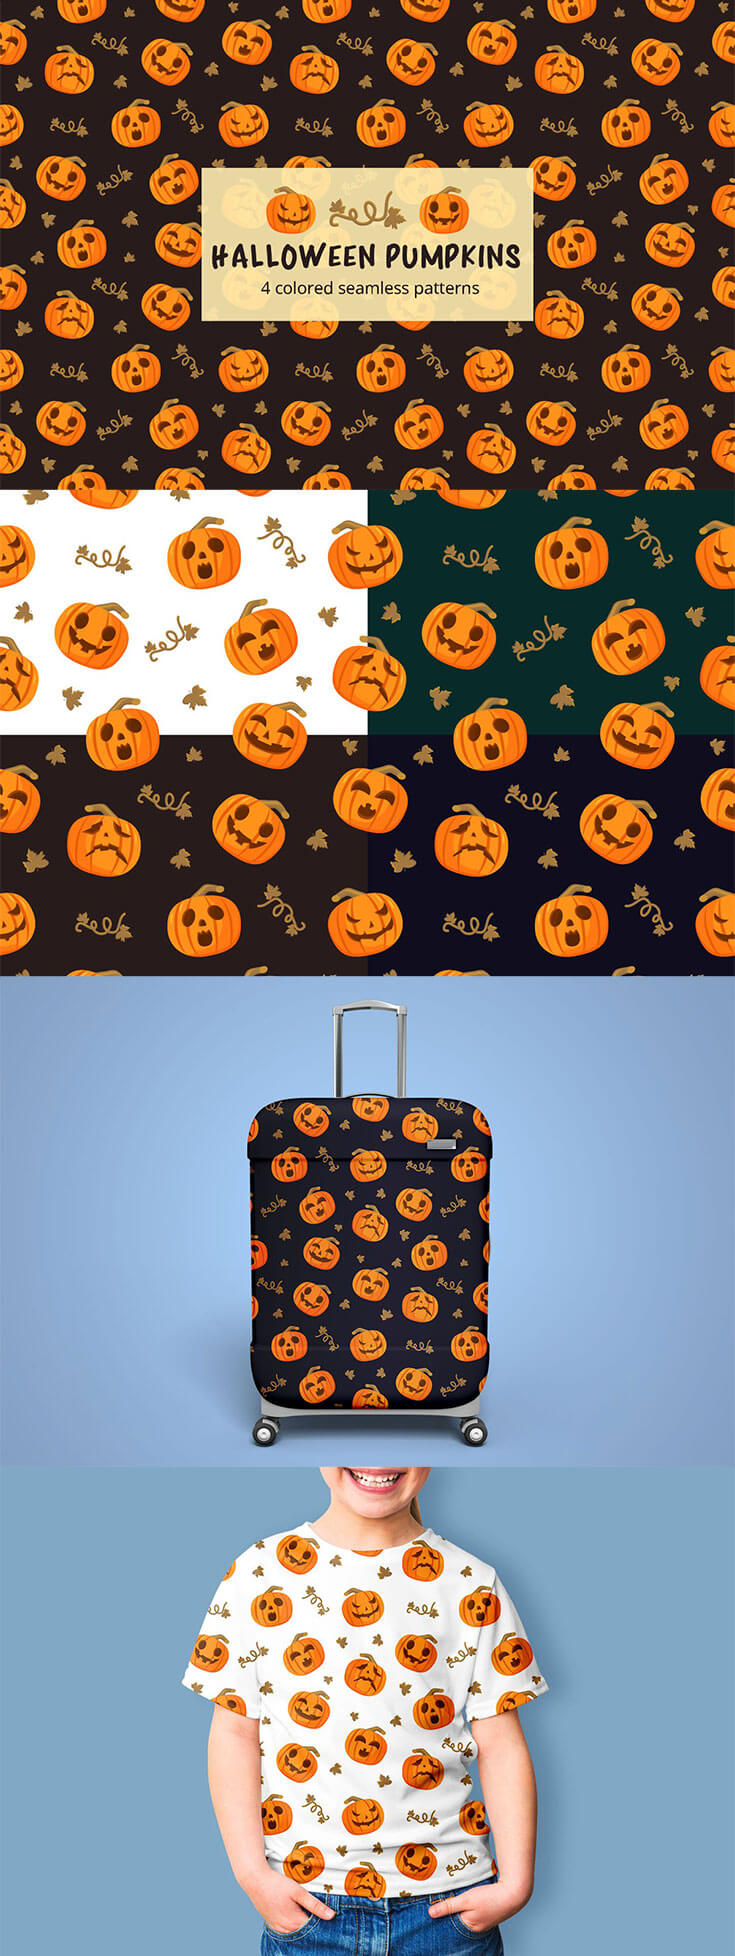 Free #Halloween #Pumpkins Vector Seamless #Pattern is a beautiful thematic set of graphics. Excellent choice for many designers. You can create a design for many things. For example, it could be children's clothing, gift wraps, pillows or bedspreads, umbrellas, mugs or cups, postcards and much more. You can use these for personal and commercial purposes.